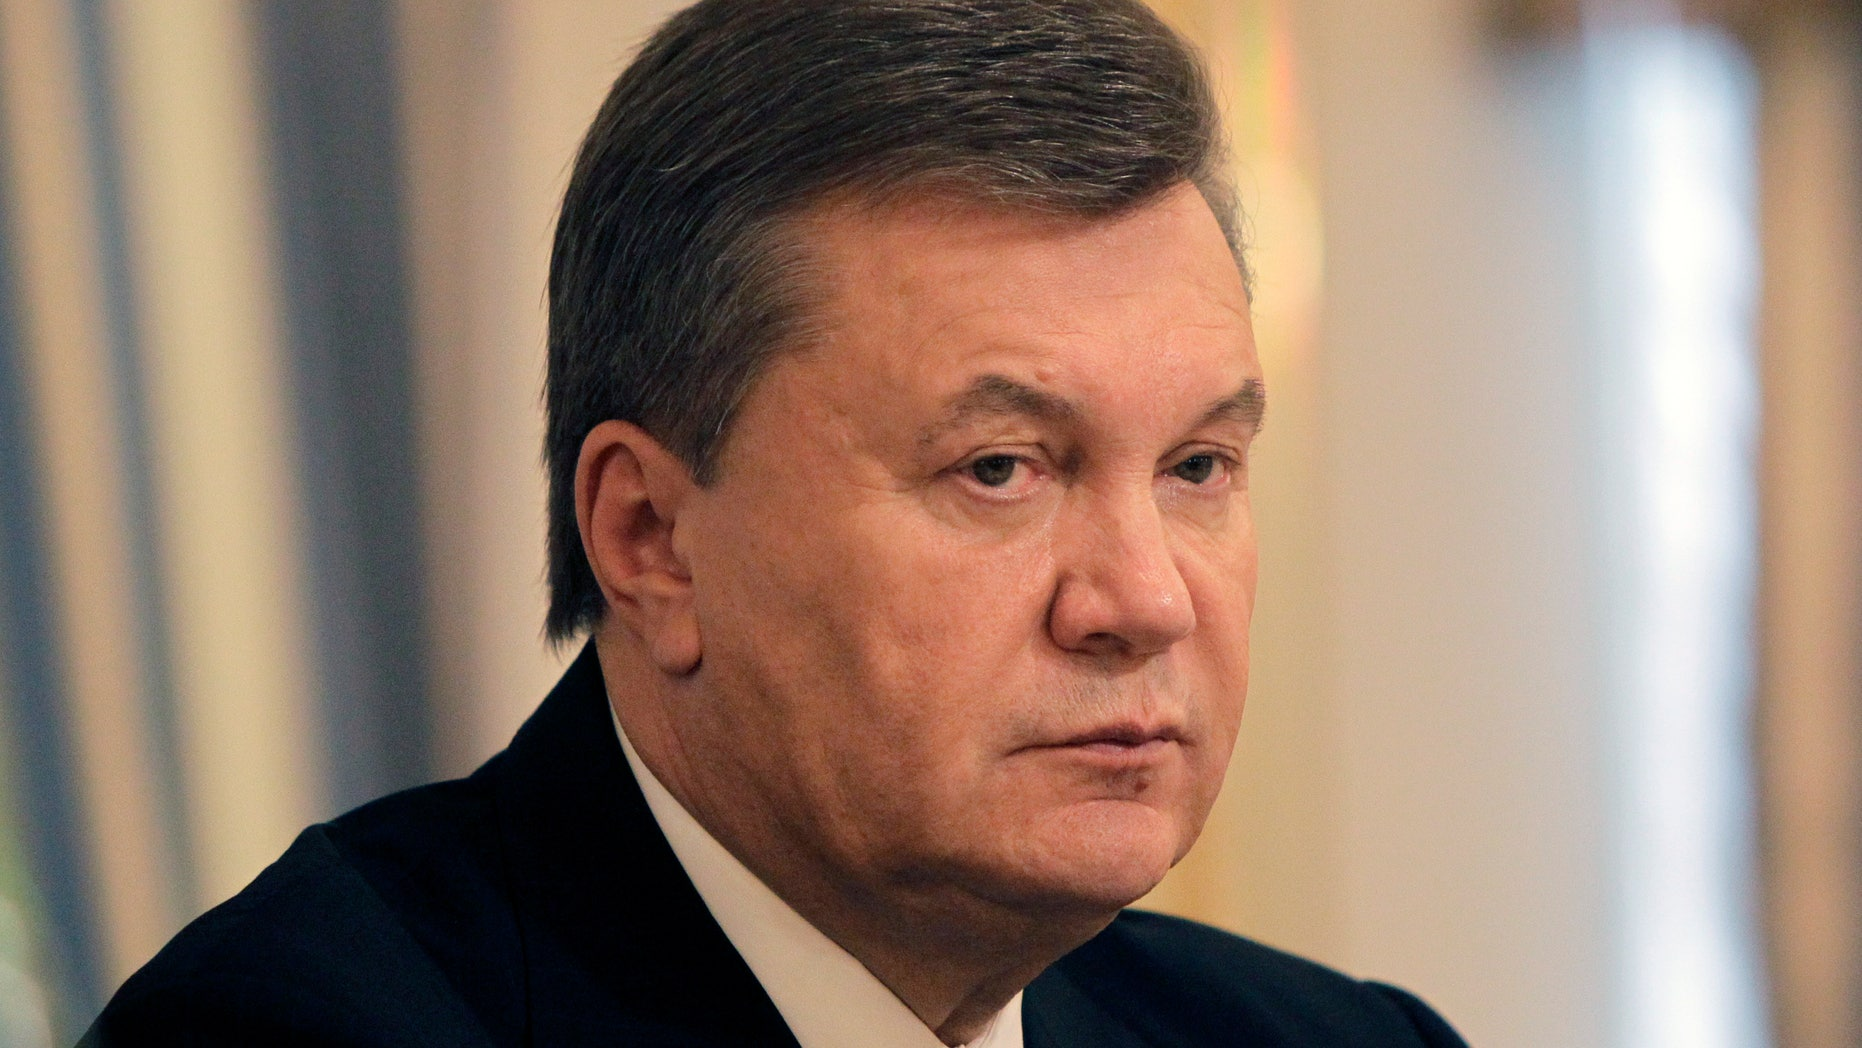 Ukrainian President Viktor Yanukovych during their meeting with EU Commissioner for Enlargement and European Neighborhood policy Stefan Fule in Kiev, Ukraine, Friday, Oct. 11, 2013.Ukrainian President Viktor Yanukovych is hoping for a quick solution to the problem the jailed former premier Yulia Tymoshenko, whose release is a key condition for a landmark agreement with the European Union.(AP Photo/Sergei Chuzavkov,Pool)